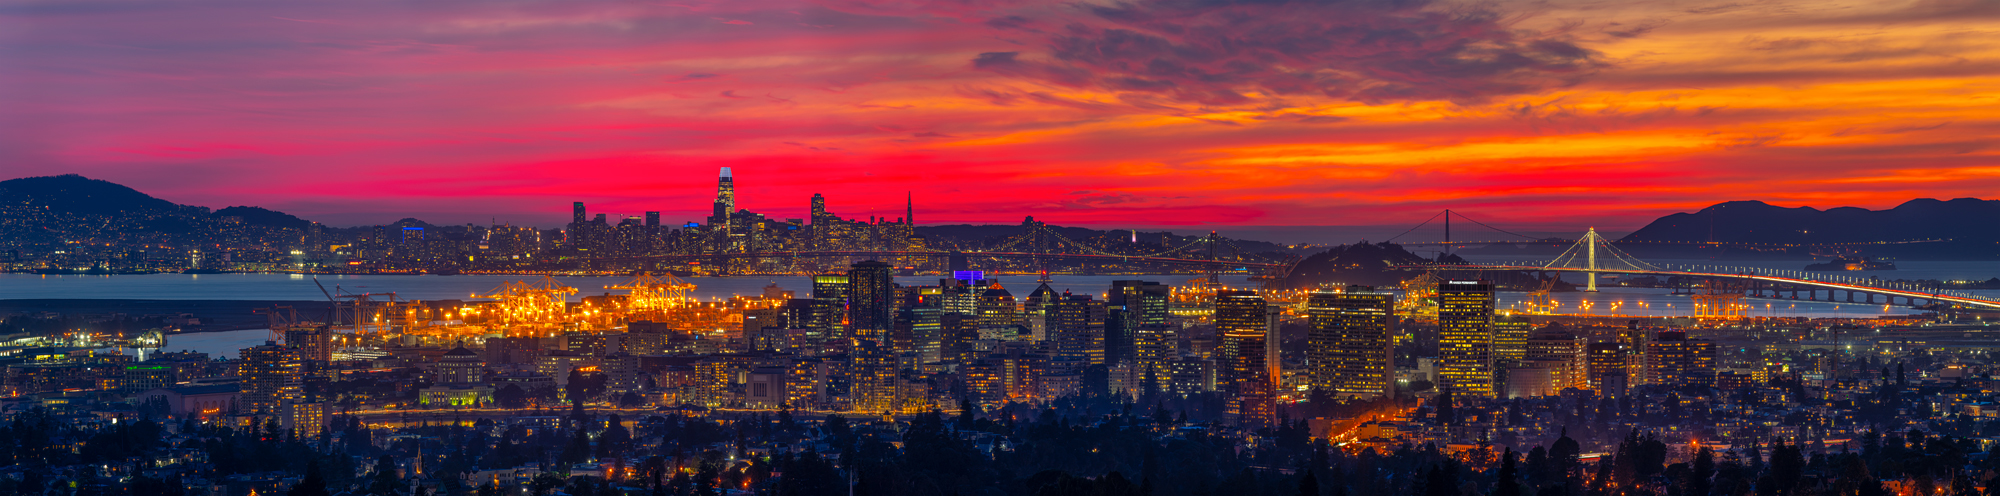 San Francisco Twin Peaks Market Street Transamerica Pyramid Panorama Fine Art Landscape Photography Mark Lilly